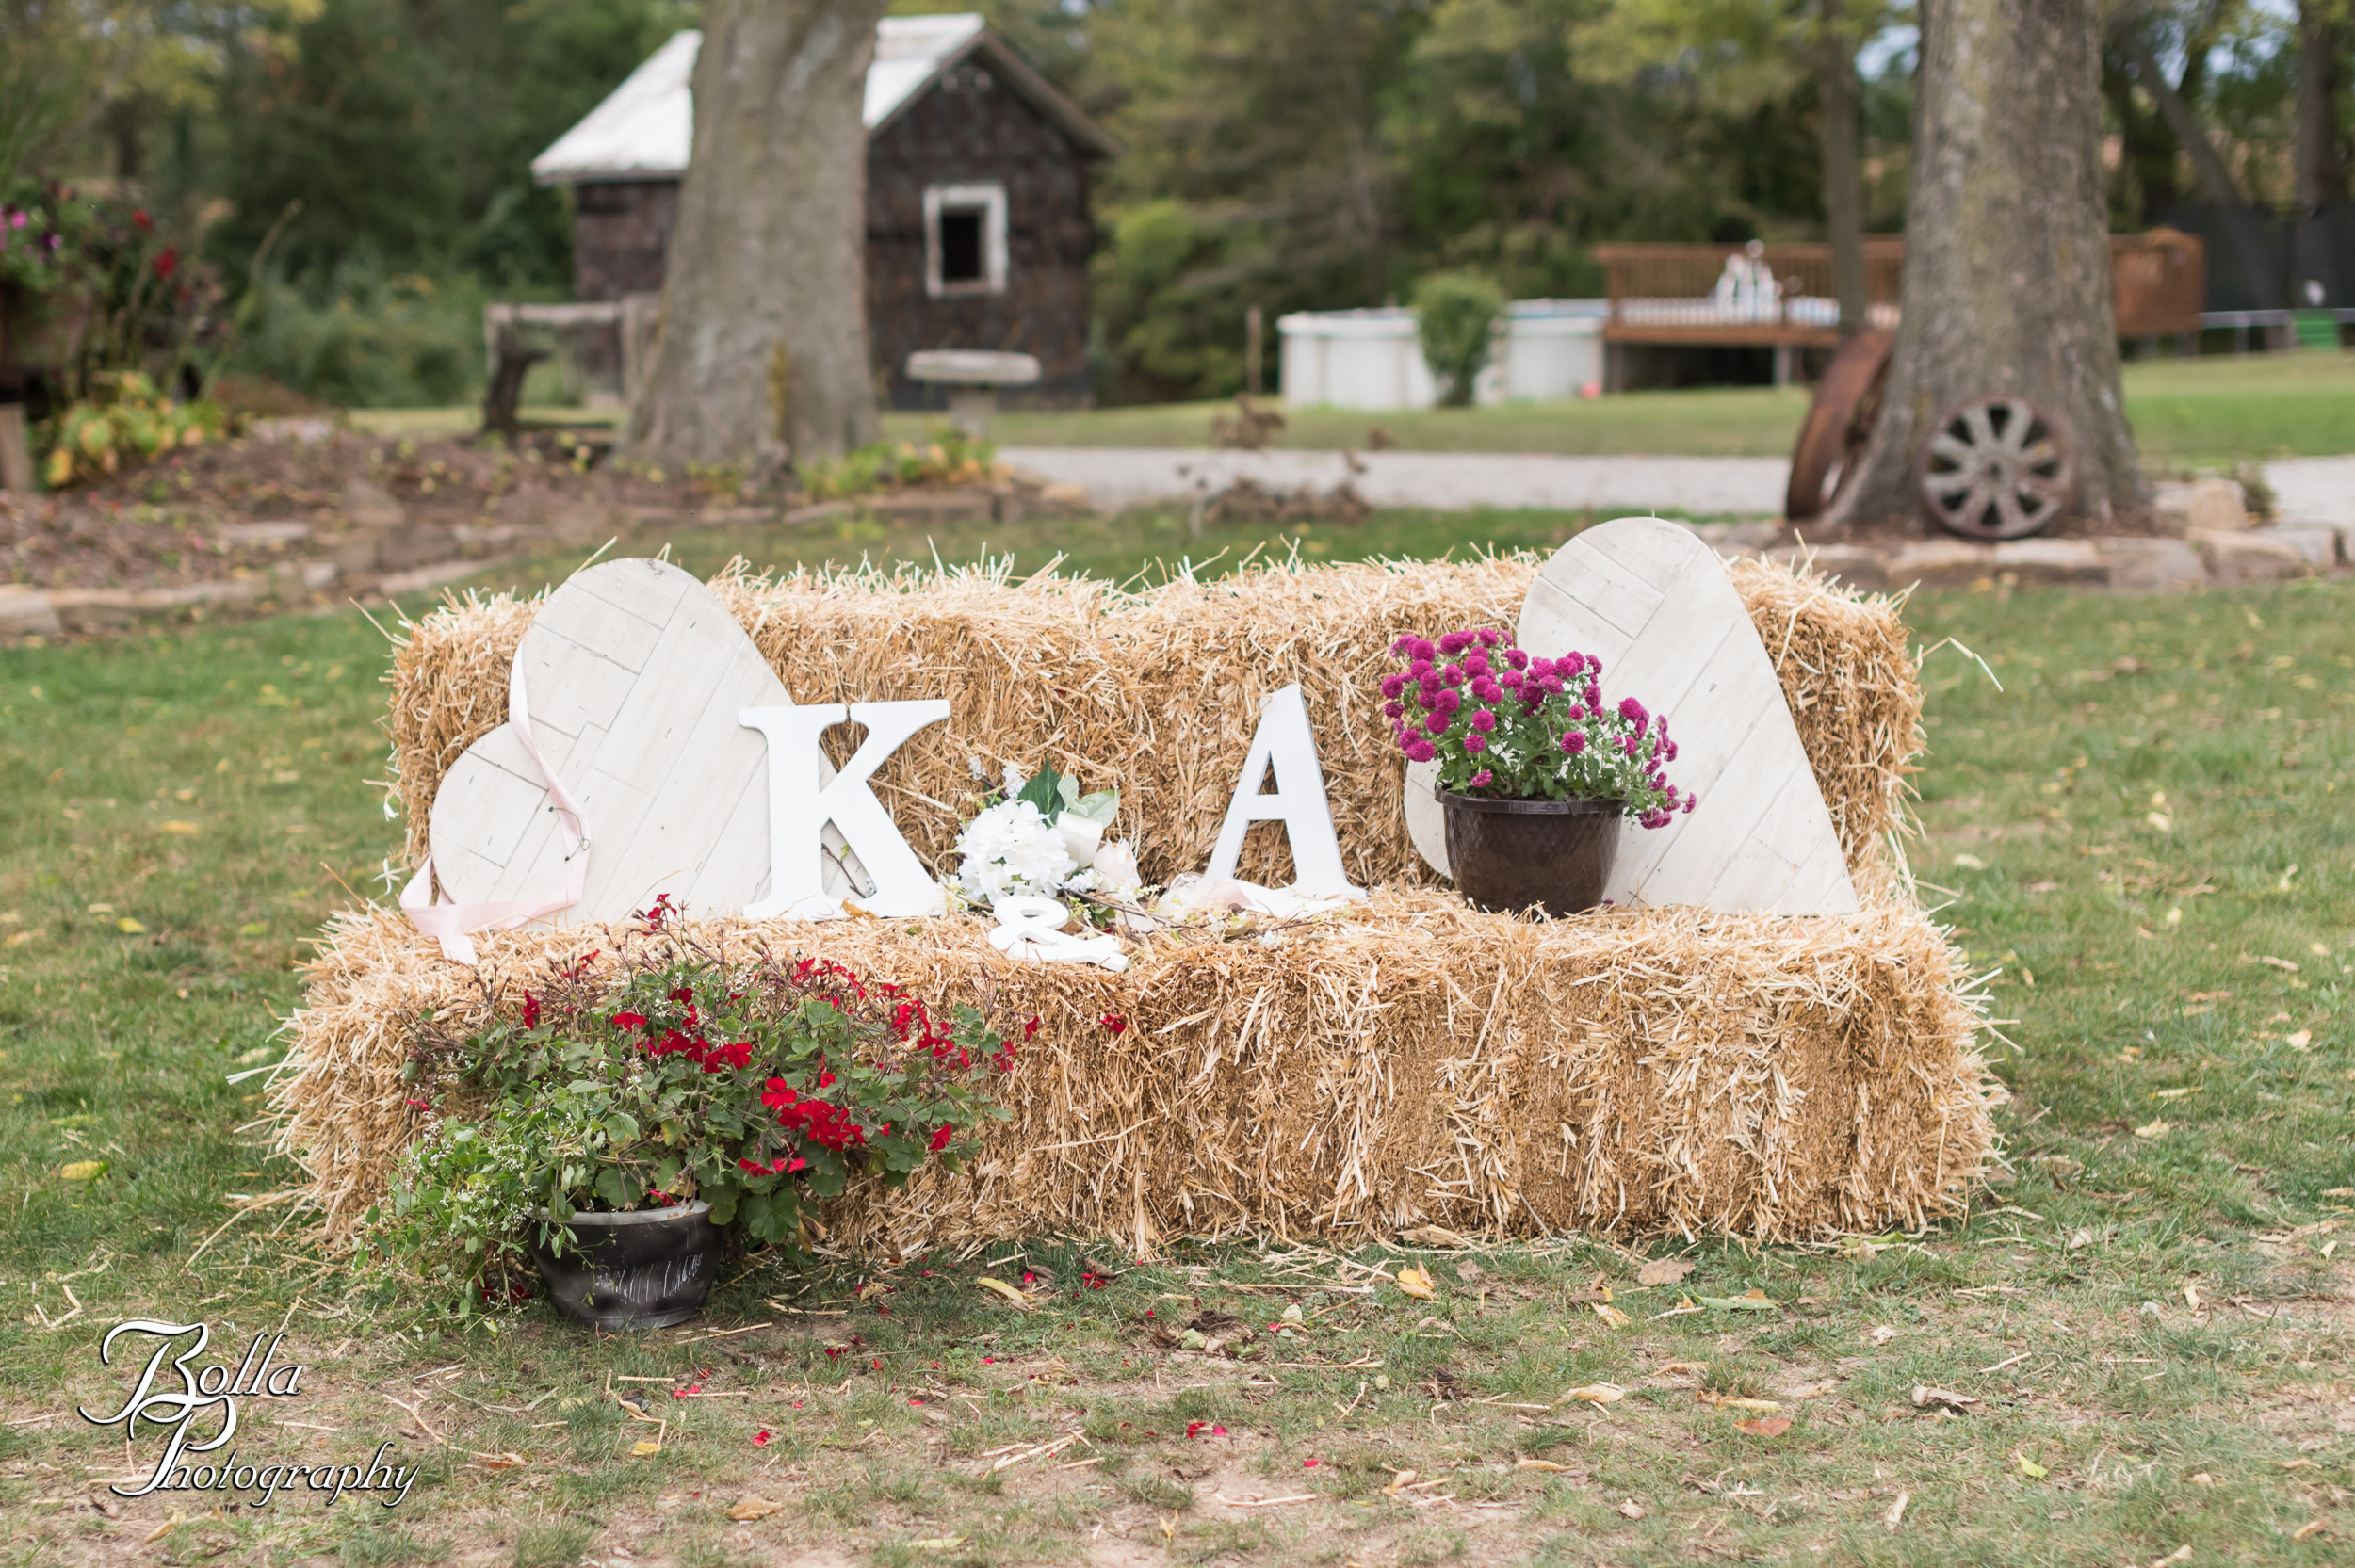 Bolla_photography_edwardsville_wedding_photographer_st_louis_weddings_Amber_Korsmeyer_Kyle_Gruner_Schwarz_Barn_blue_jeans_pickup_truck_autumn-0092.jpg